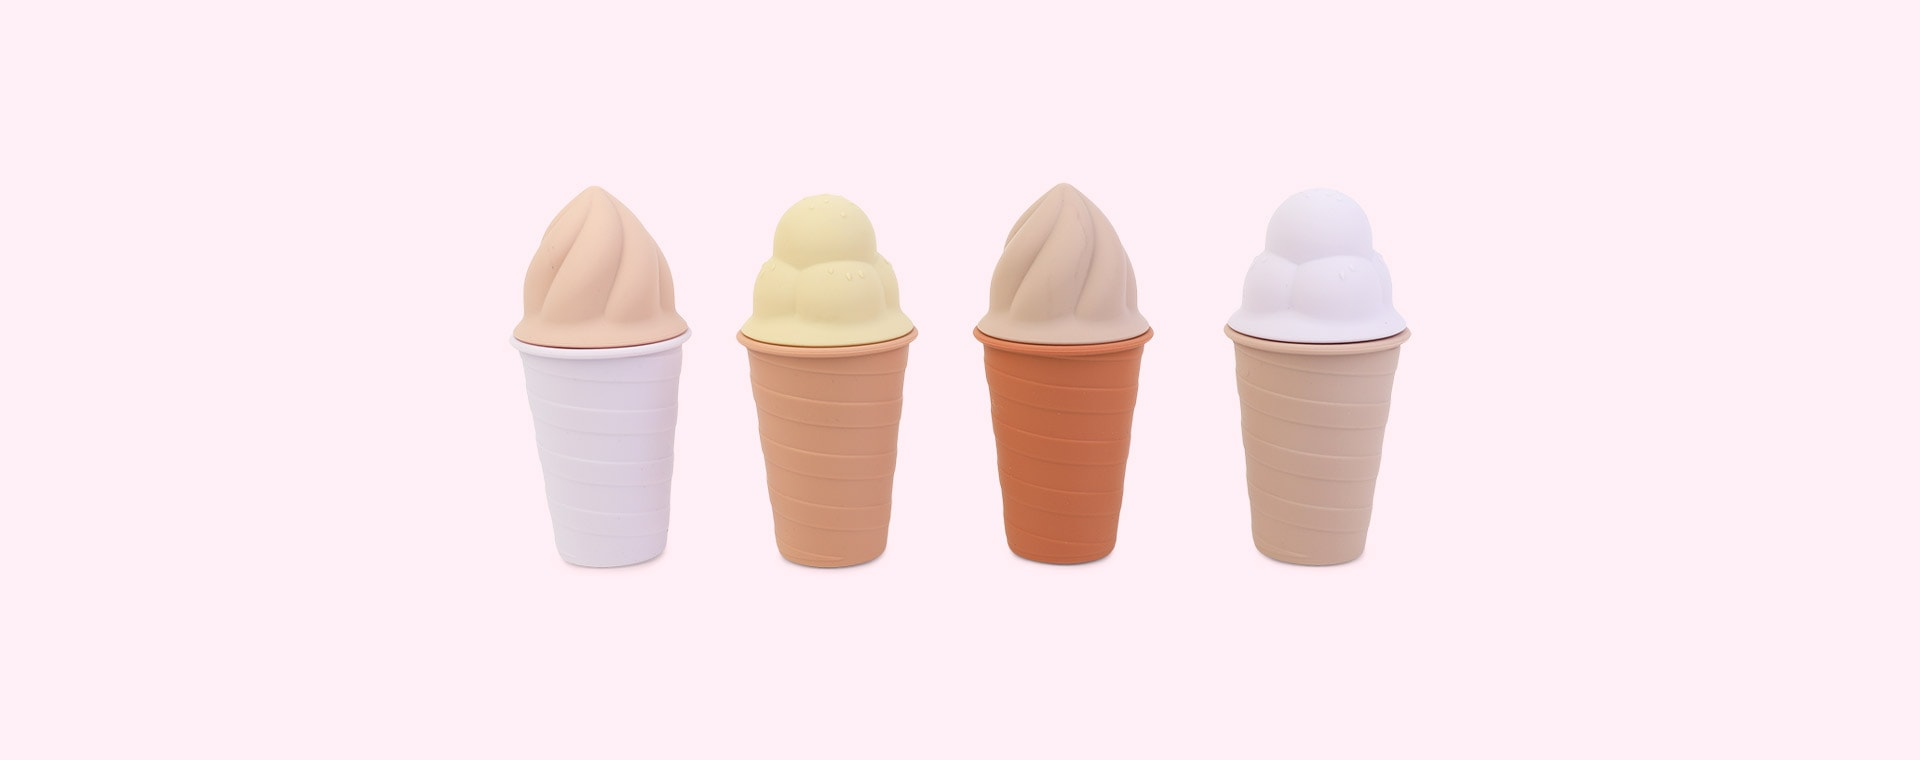 Rose Multi Mix Liewood Bay Ice Cream Toy 4-pack